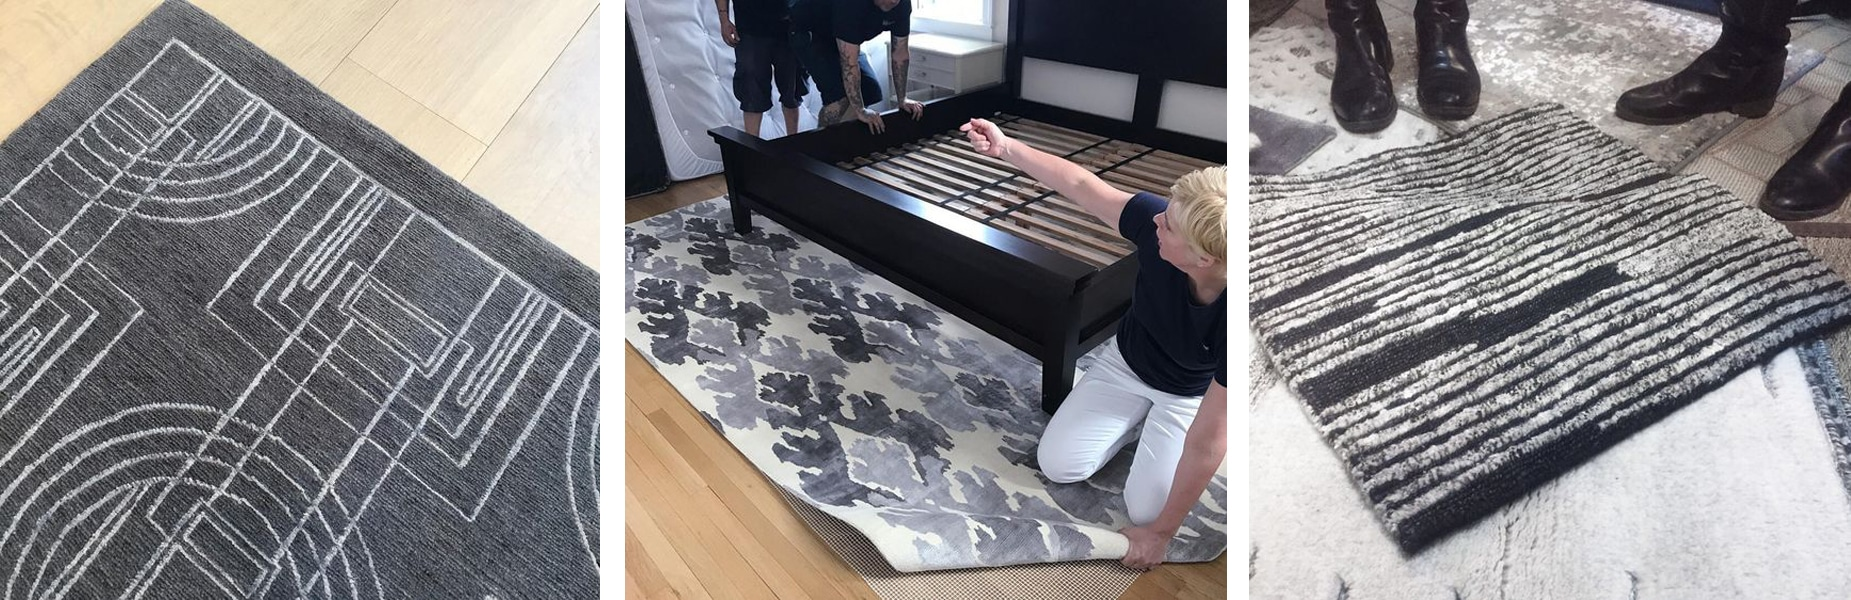 process shots - installing patterned area rugs - darci hether new york